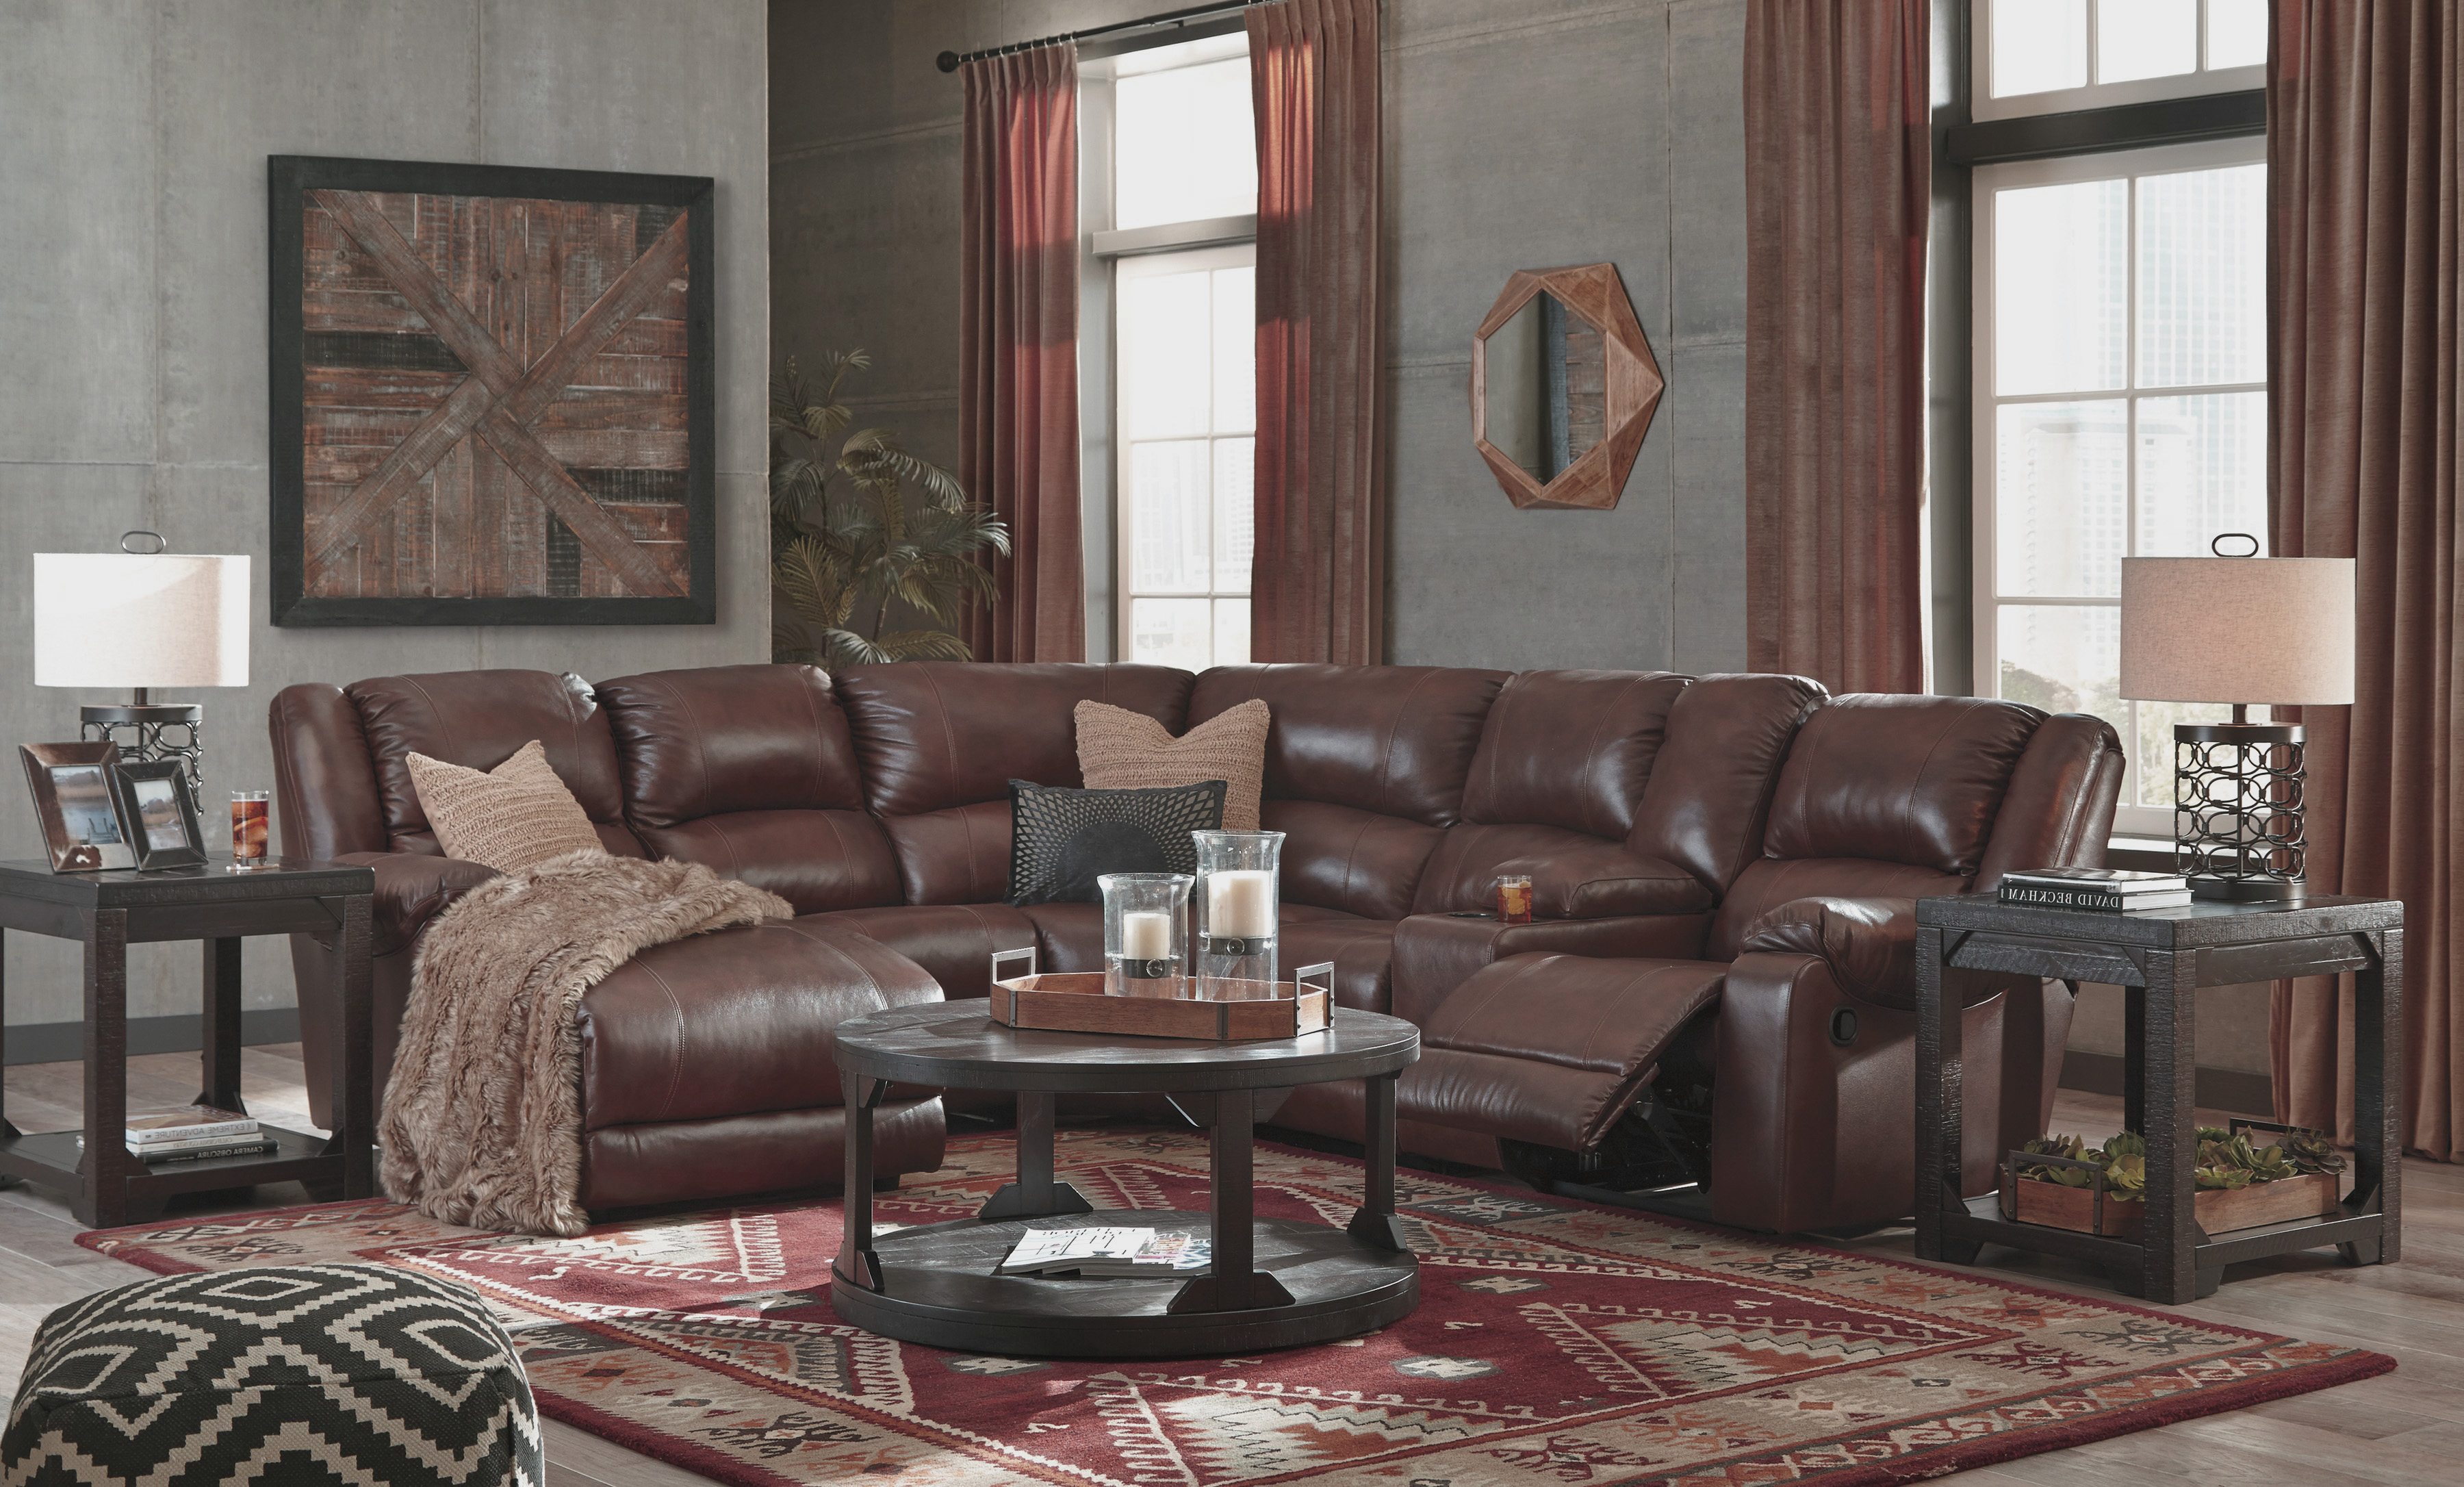 Swell Bradleys Rustic Furniture Benchcraft Leather Sectionals Squirreltailoven Fun Painted Chair Ideas Images Squirreltailovenorg